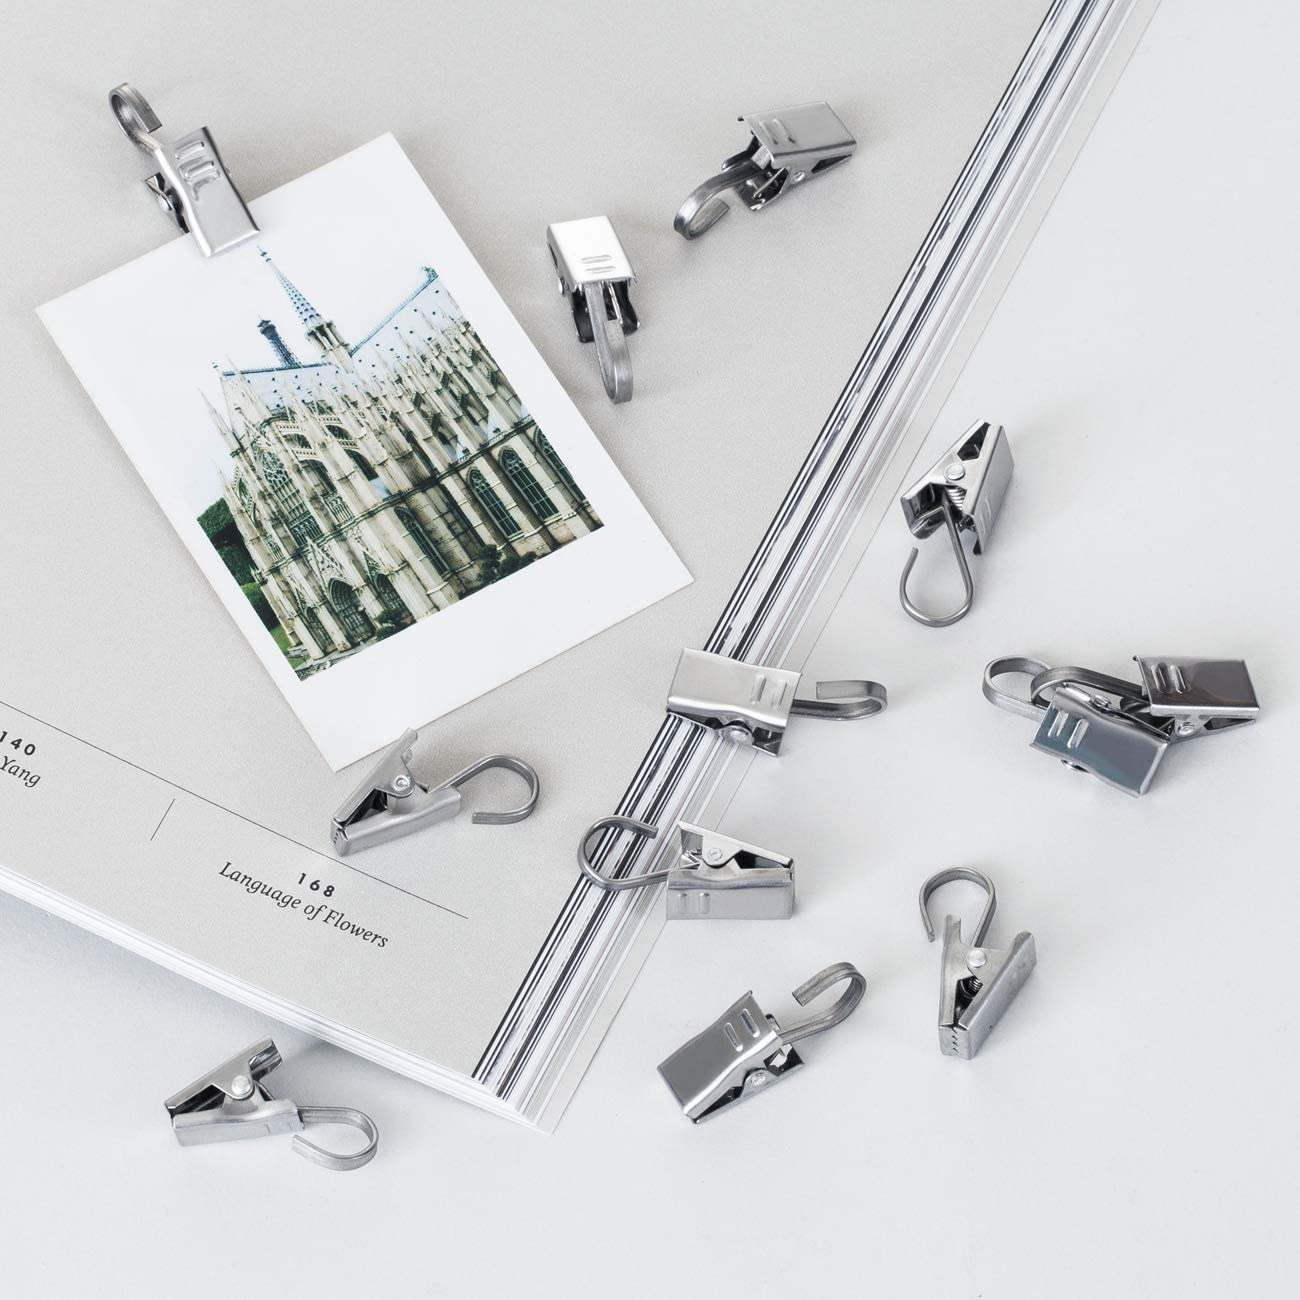 LIHAO 24 Pack Curtain Clips Stainless Steel Shower Curtain Clips with Hook for String Party Light Photos Art Supplies Hook Clip Hanger Sliver